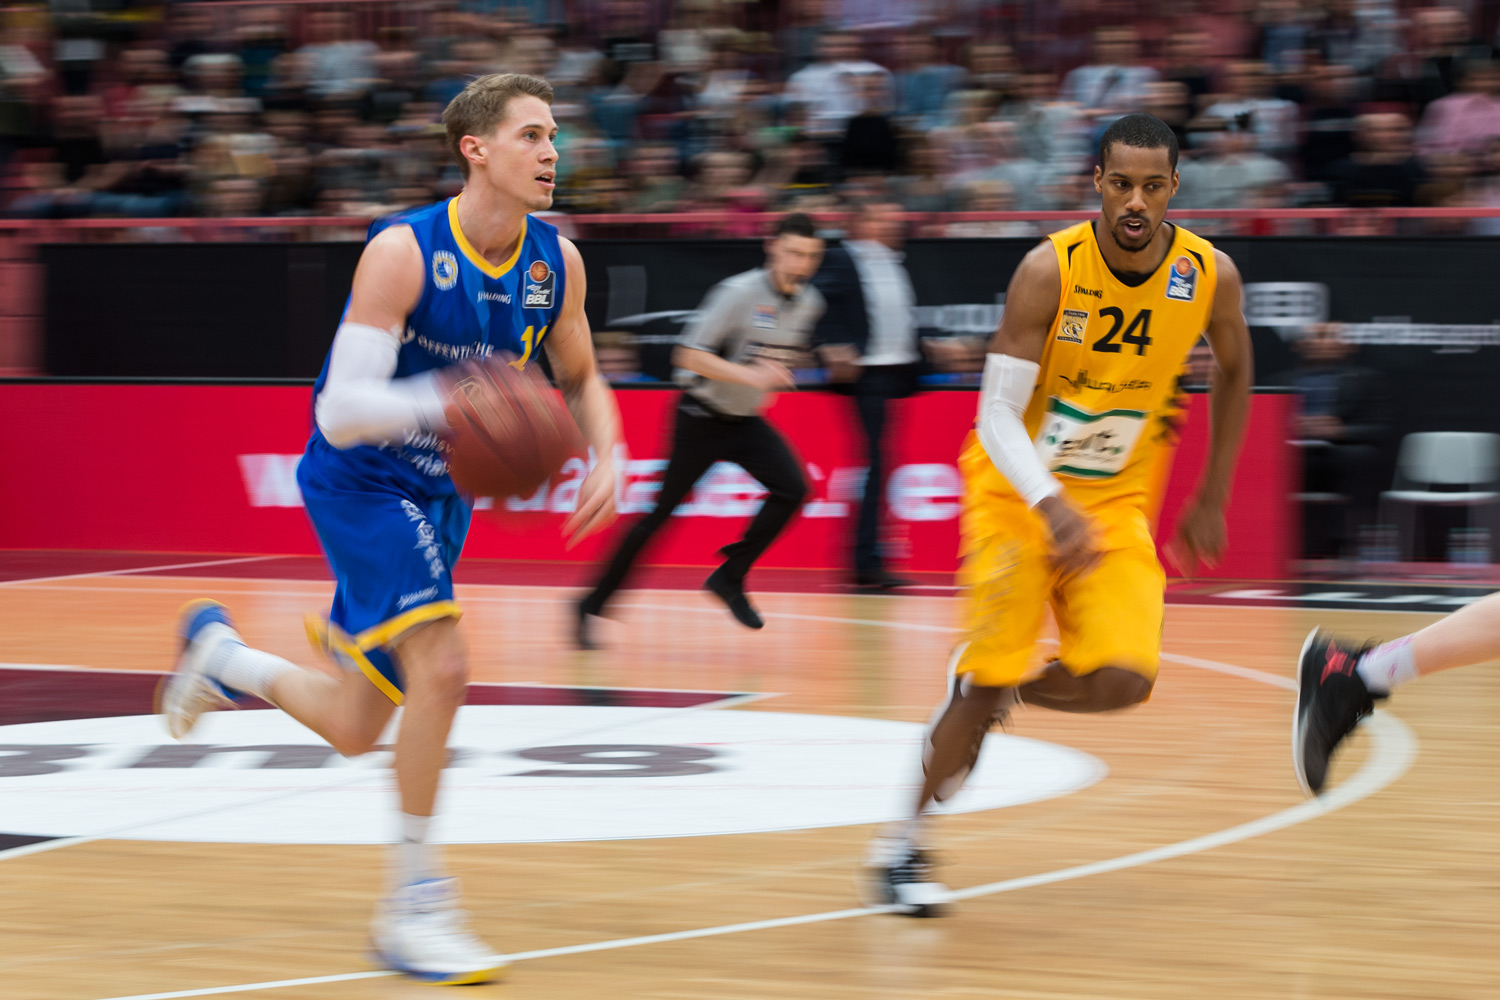 Basketball, Sport, sports, Mitzieher, Panning Shot, Panning, Einzelaktion, mit dem Ball, dribbelt, Walter Tigers Tübingen, Eisbären Bremerhaven, easyCredit BBL, easyCredit Basketball Bundesliga, Action, Aktion, Spieler, Player